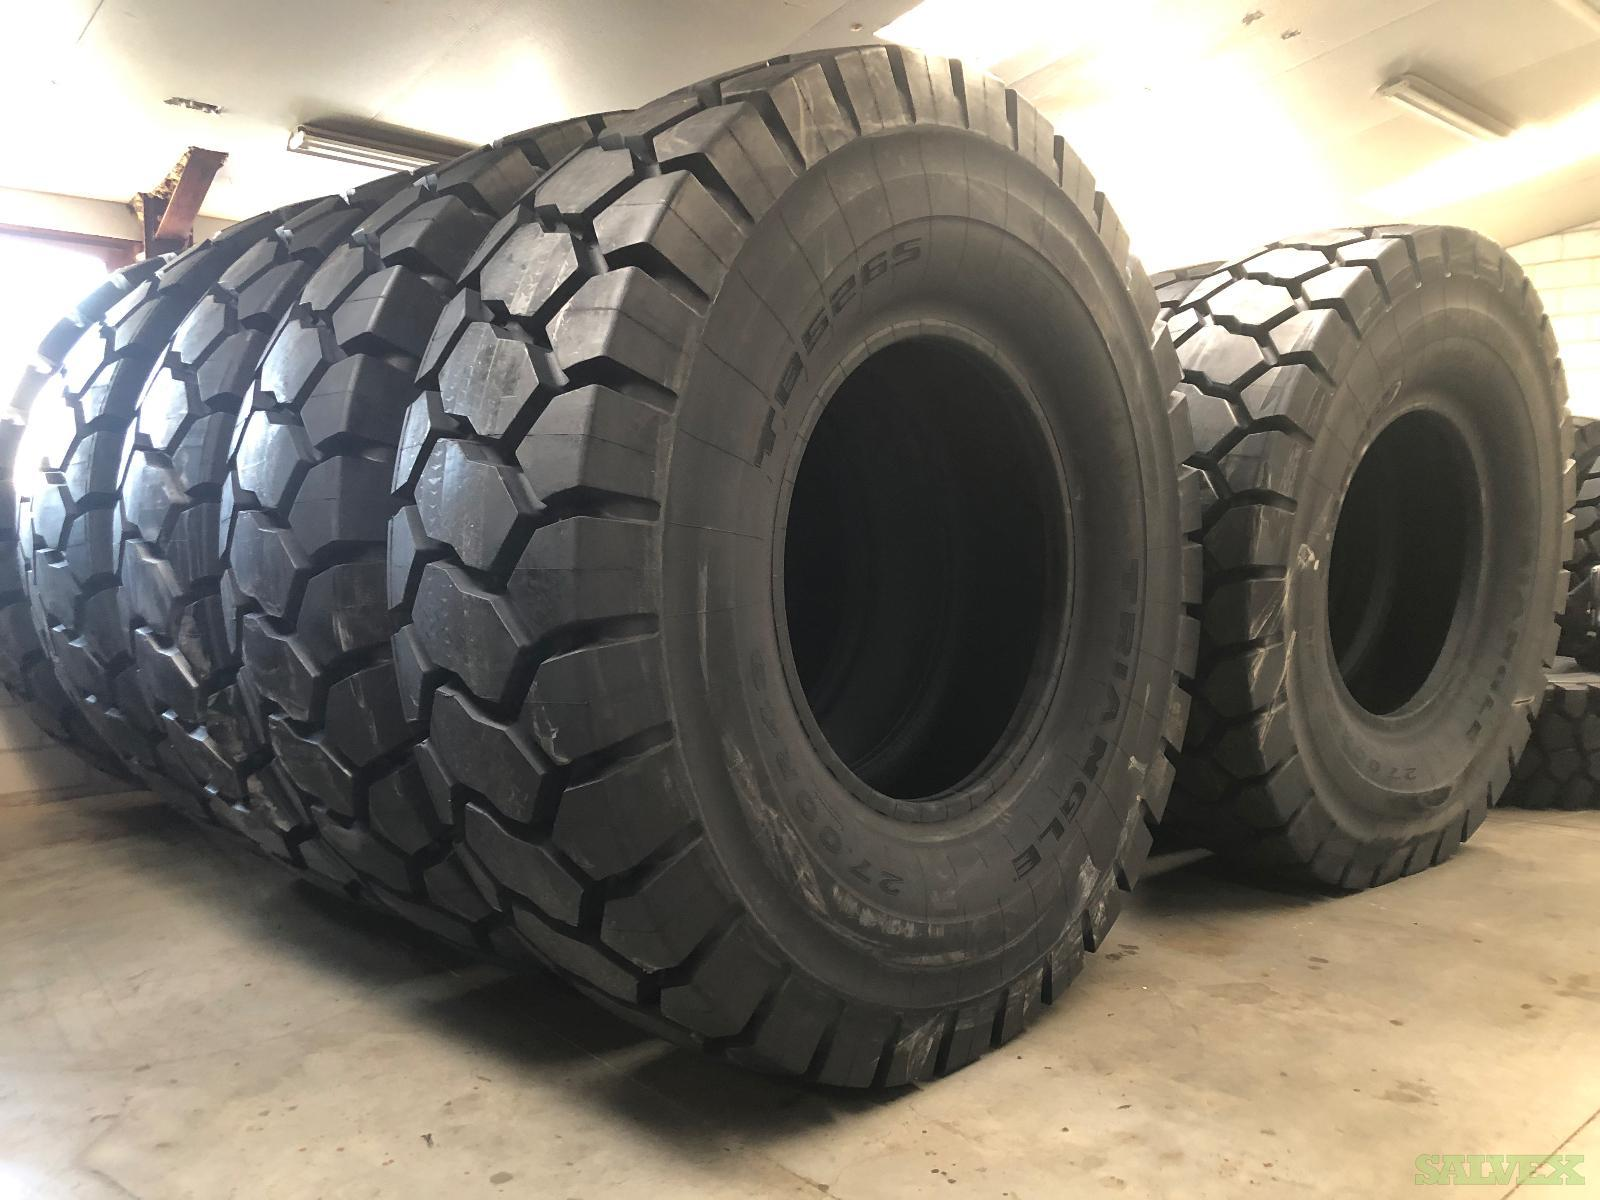 Triangle TB626S / 27.00R49 / Off-The-Road Tires (20 Units) in Belgium